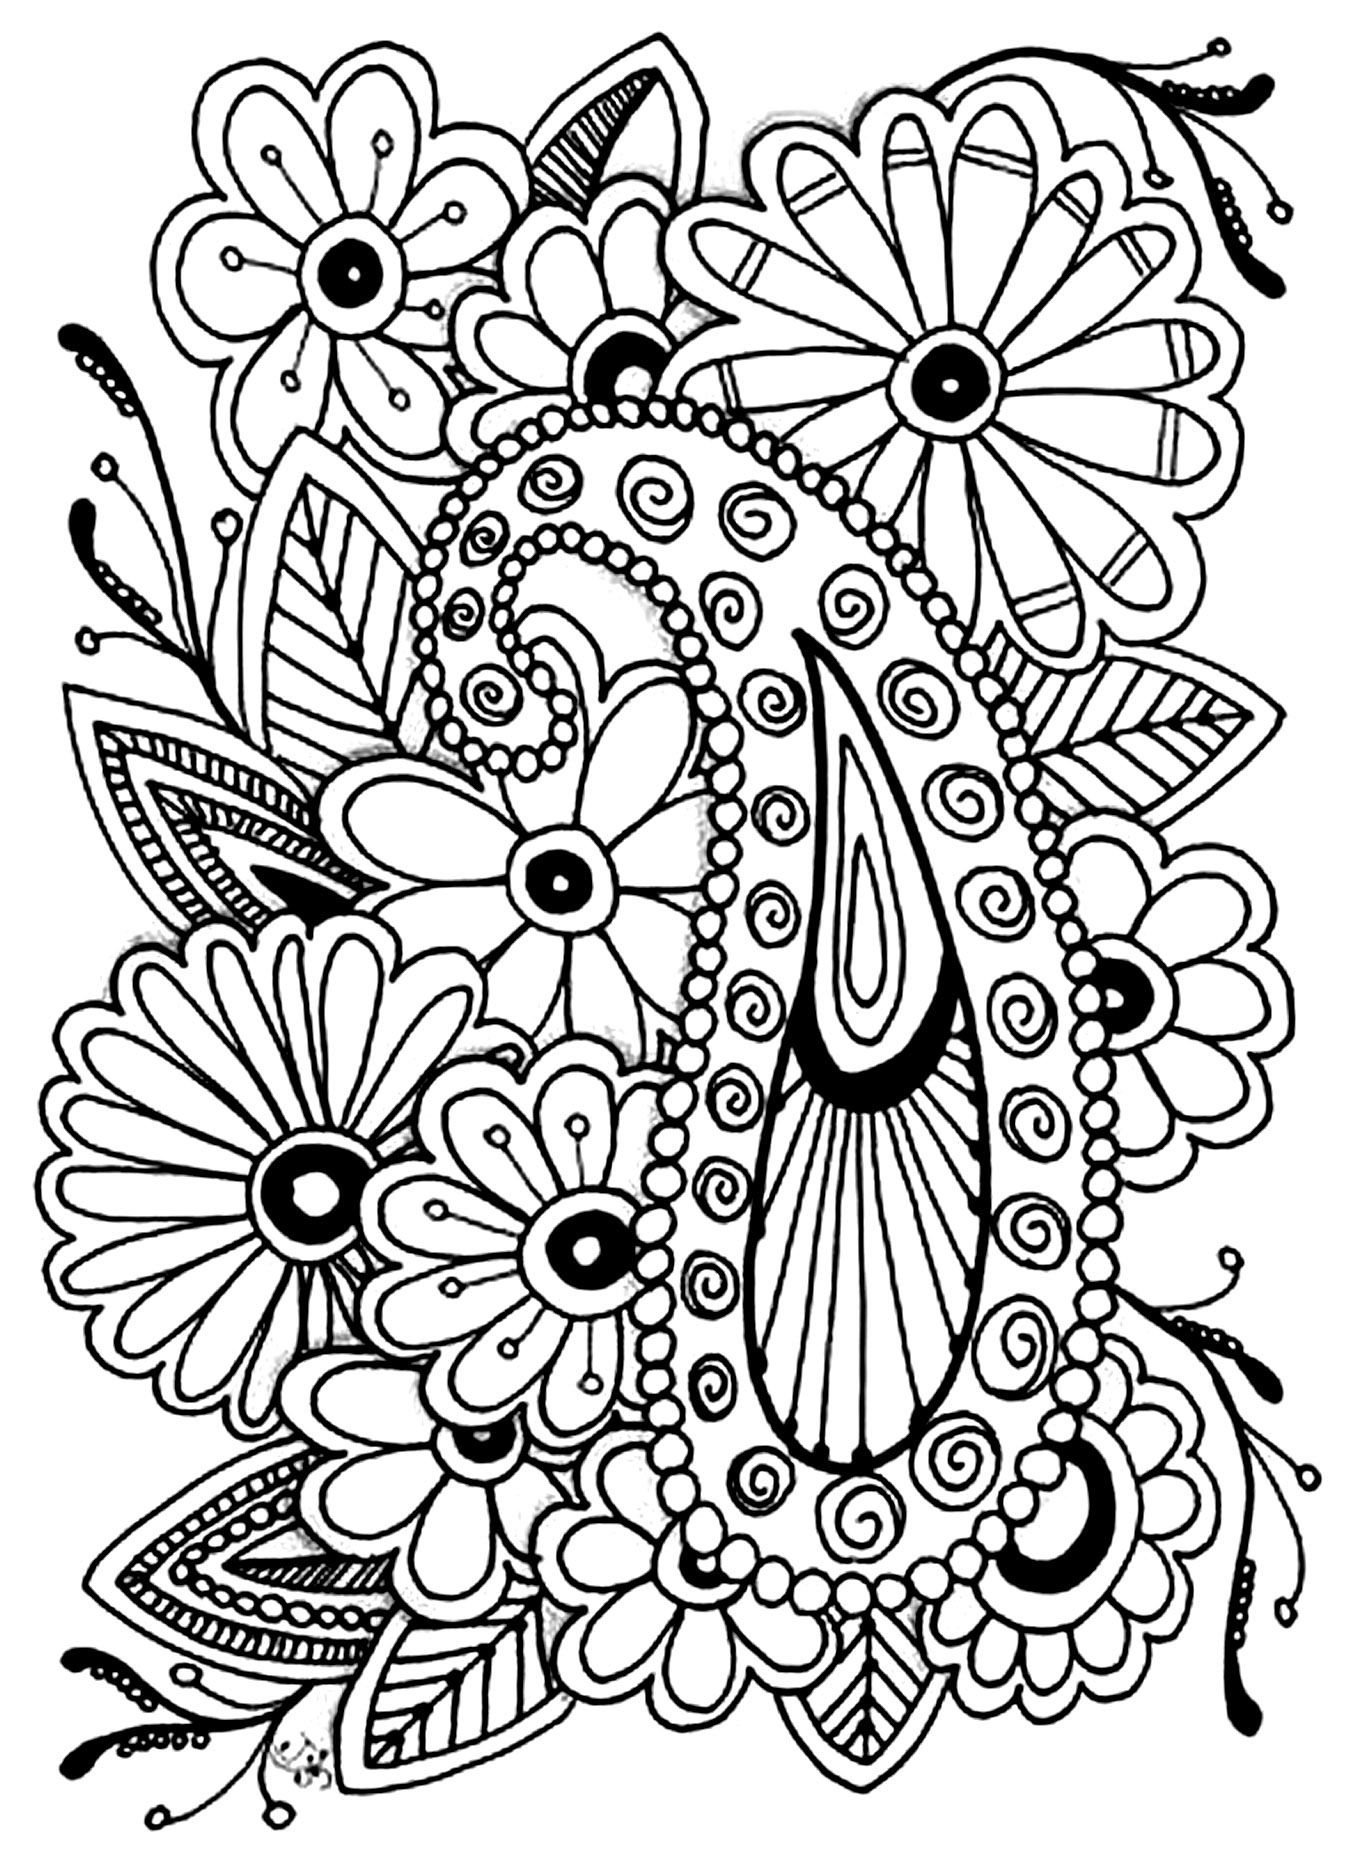 Flowers paisley - Flowers Adult Coloring Pages | colouring pages for adults flowers